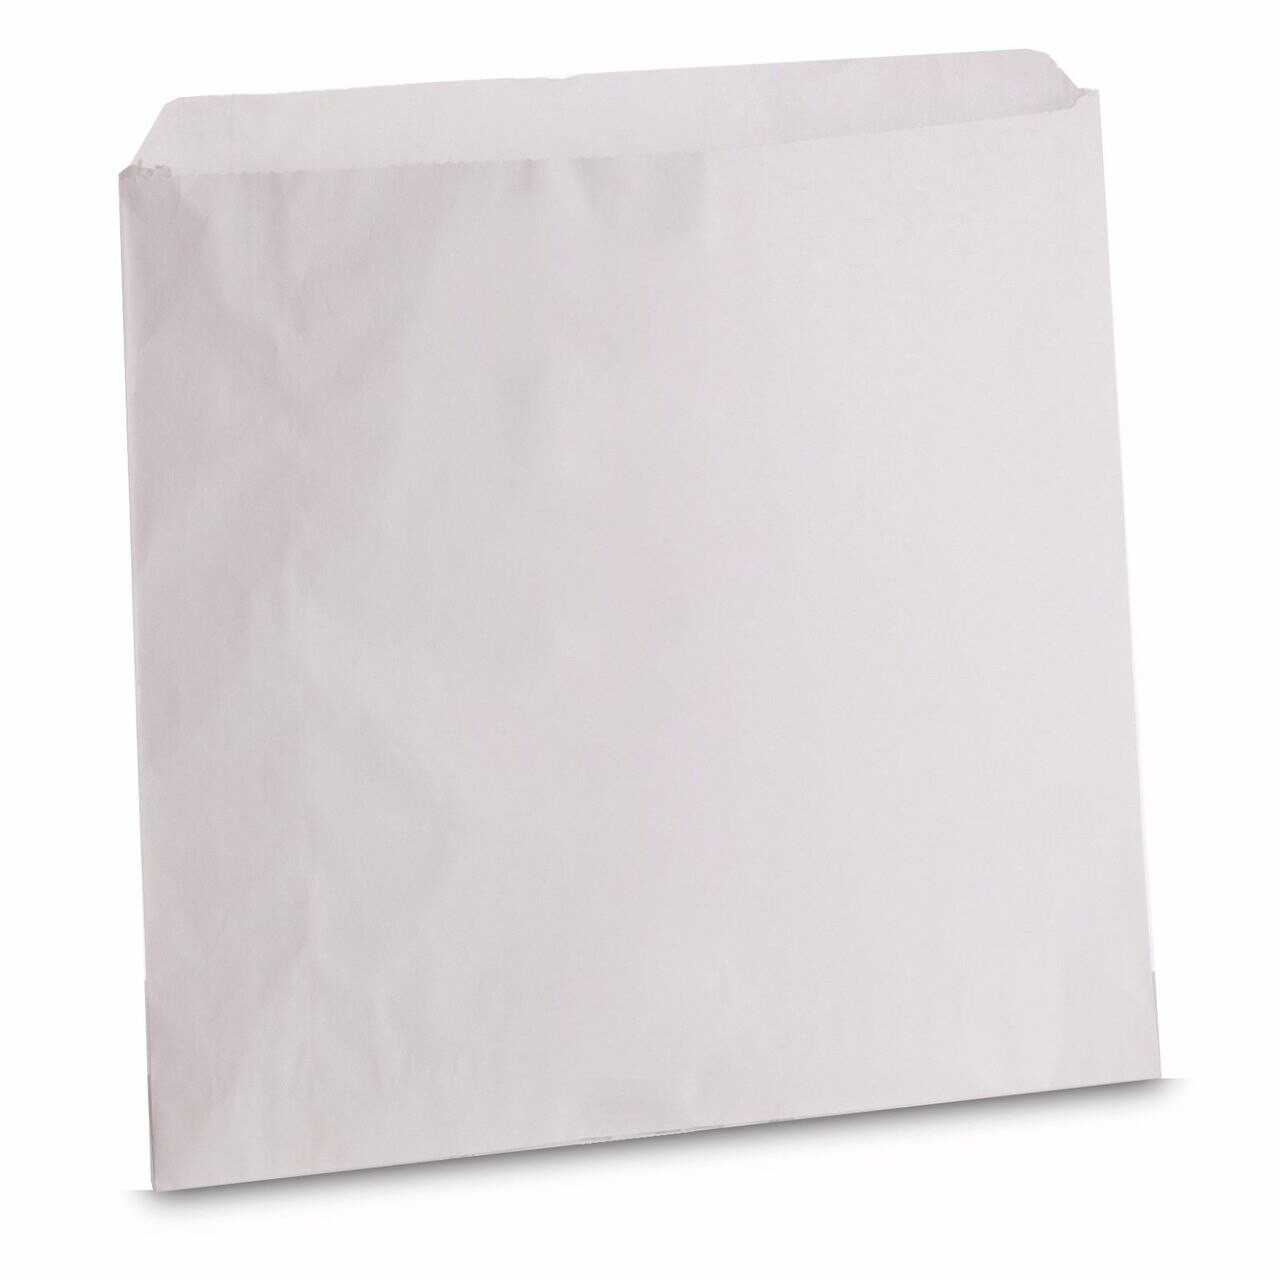 Greaseproof White Paper Bags Size 10x10 Pack Size 1000